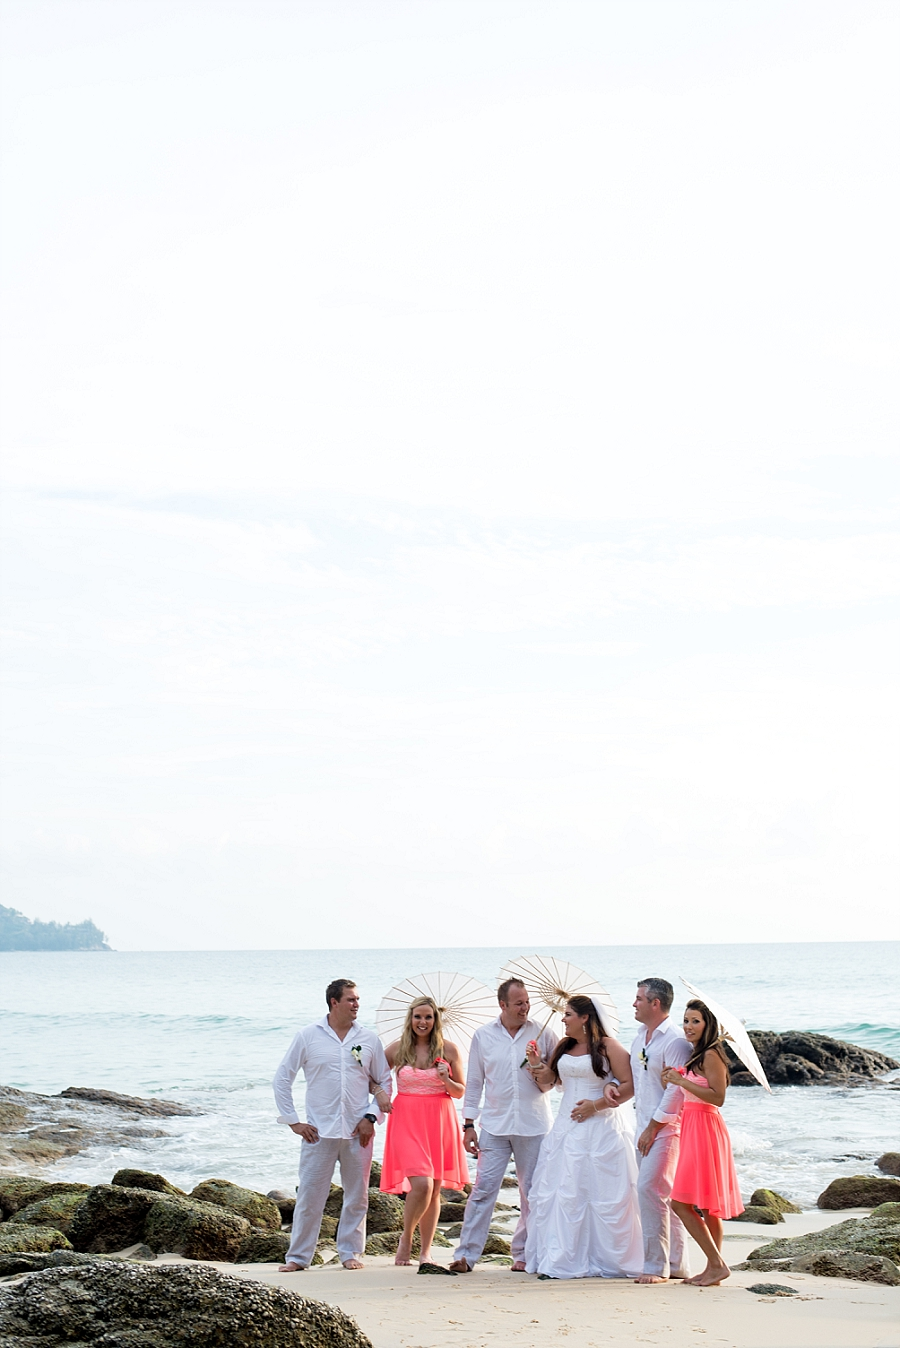 Darren Bester Photography - Cape Town Wedding Photographer - Destination Wedding - Thailand - Stacy and Shaun_0061.jpg